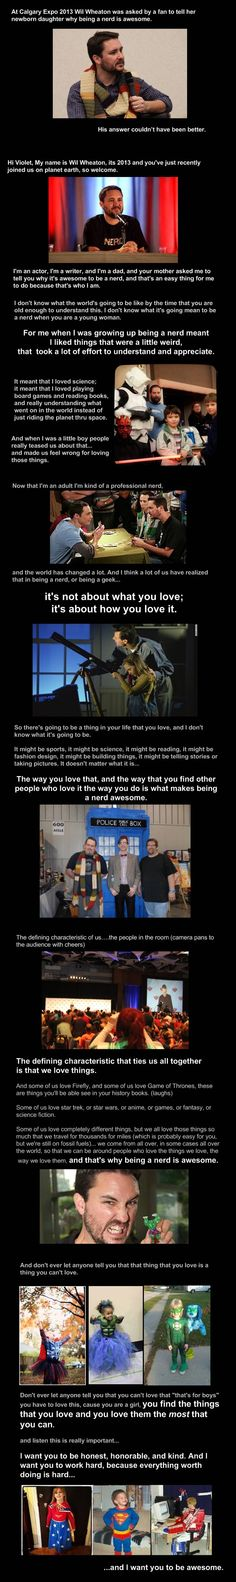 a message to future geeks by wil wheaton... truly amazing!